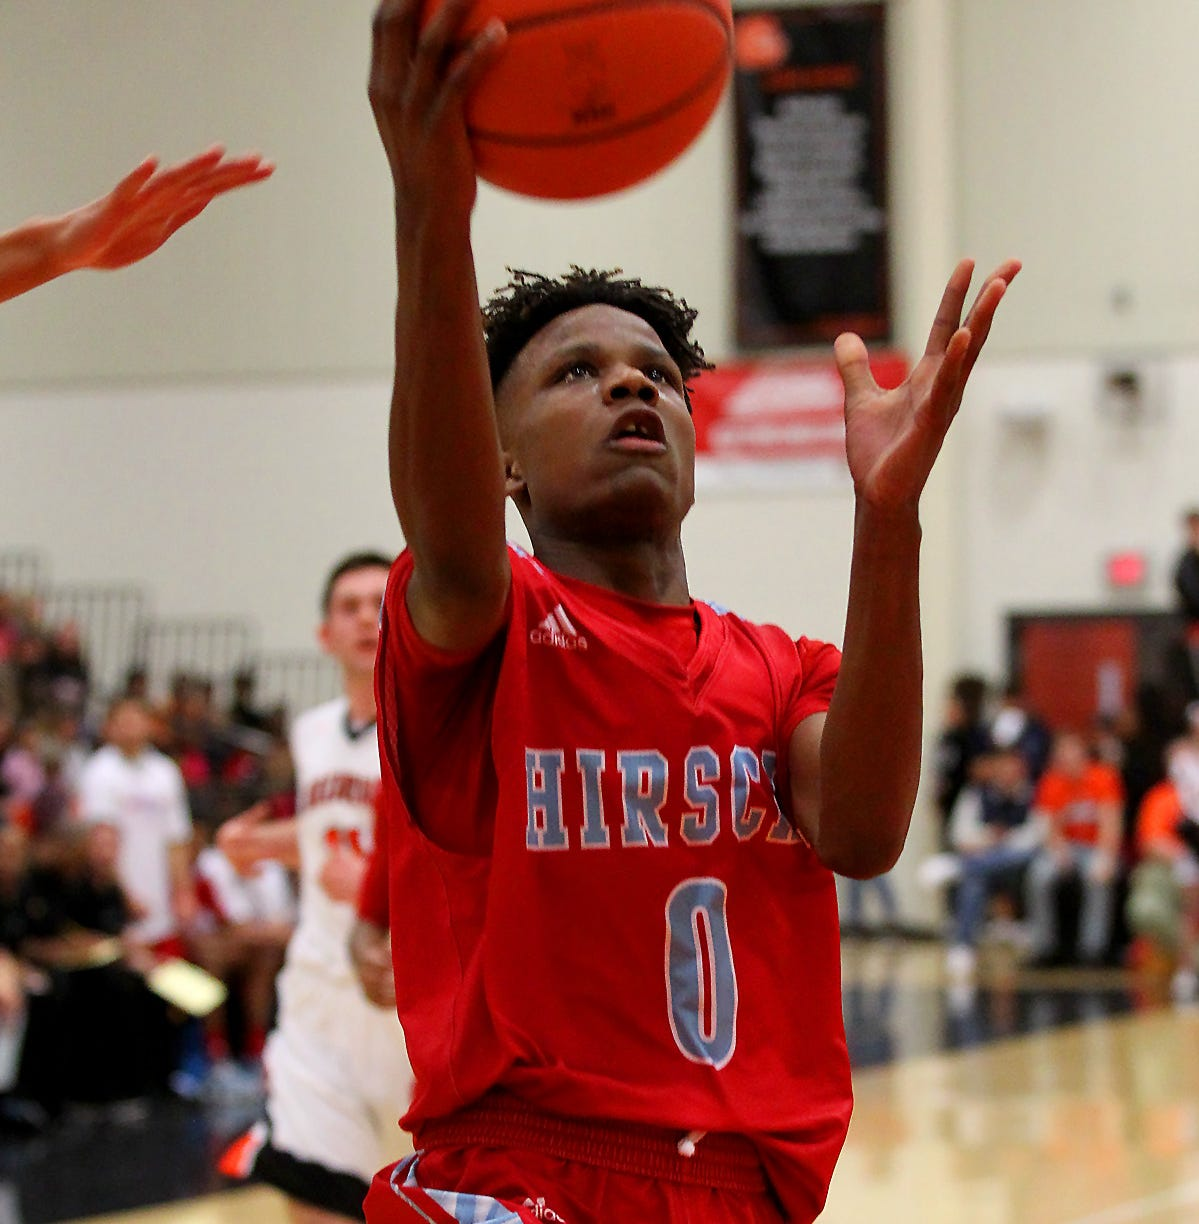 Boys hoops roundup: Hirschi, Graham, Bowie, Windthorst, Seymour advance